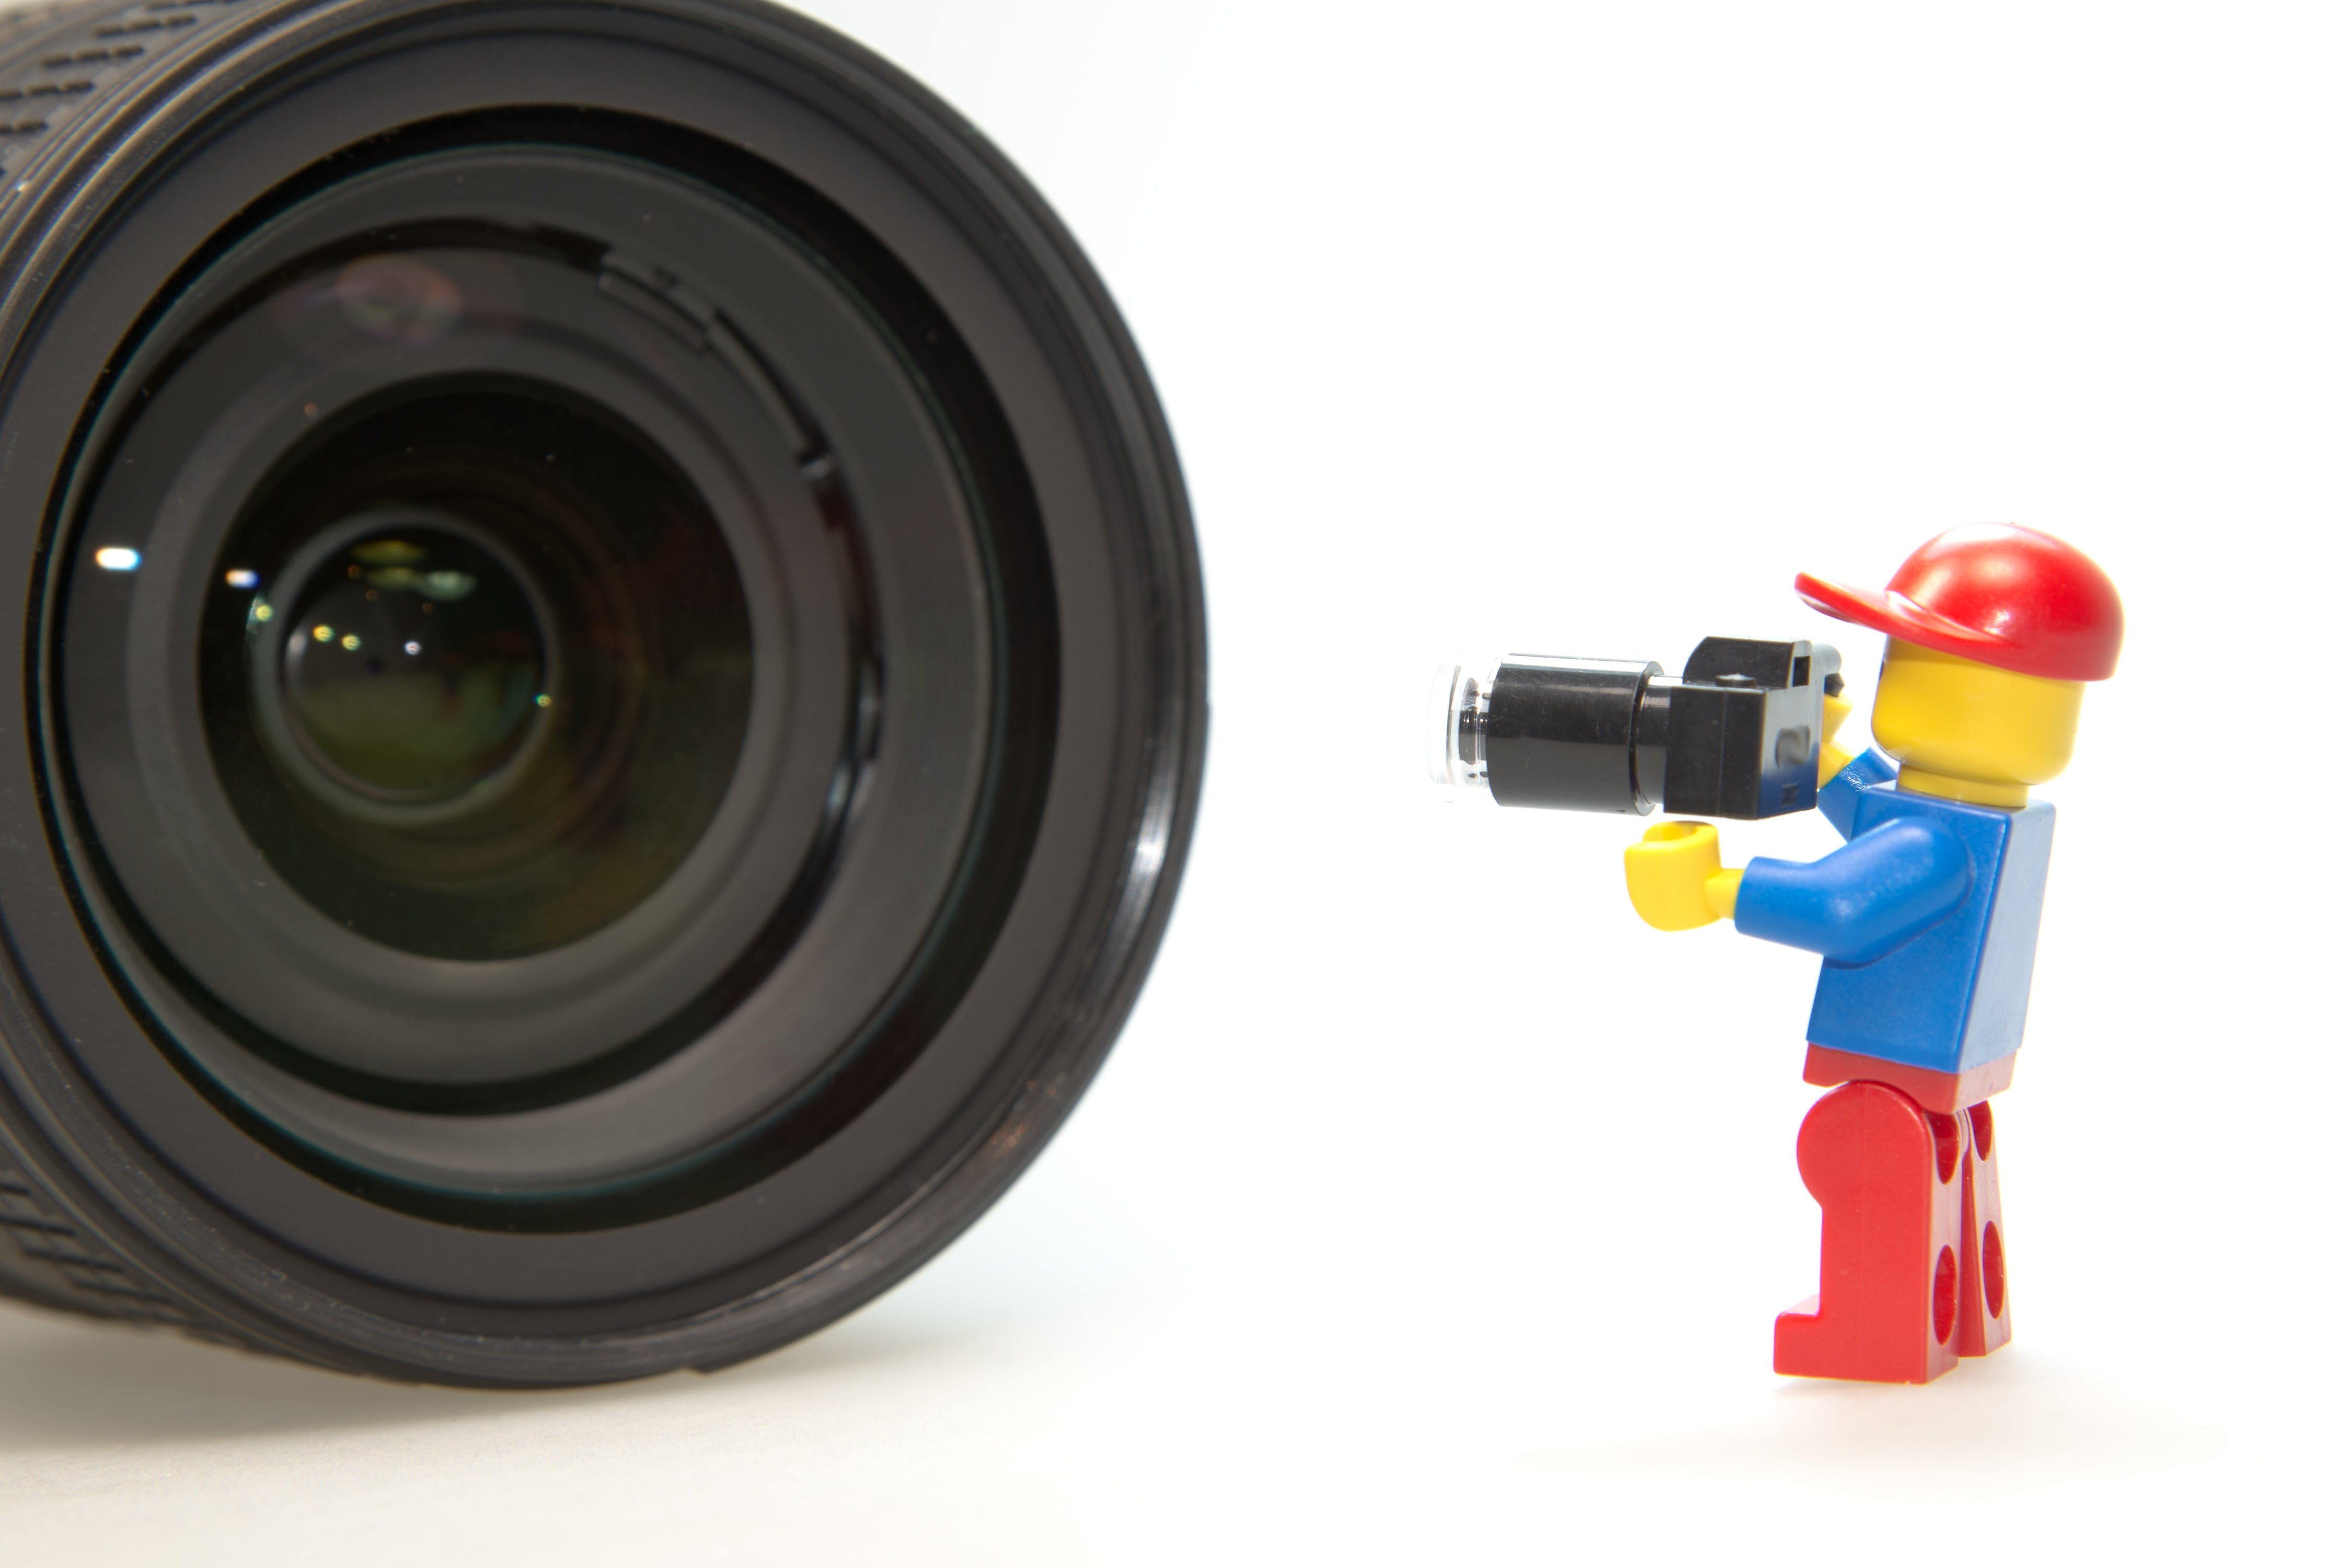 Blue and Red Lego Toy Taking Picture on Black Camera Lens